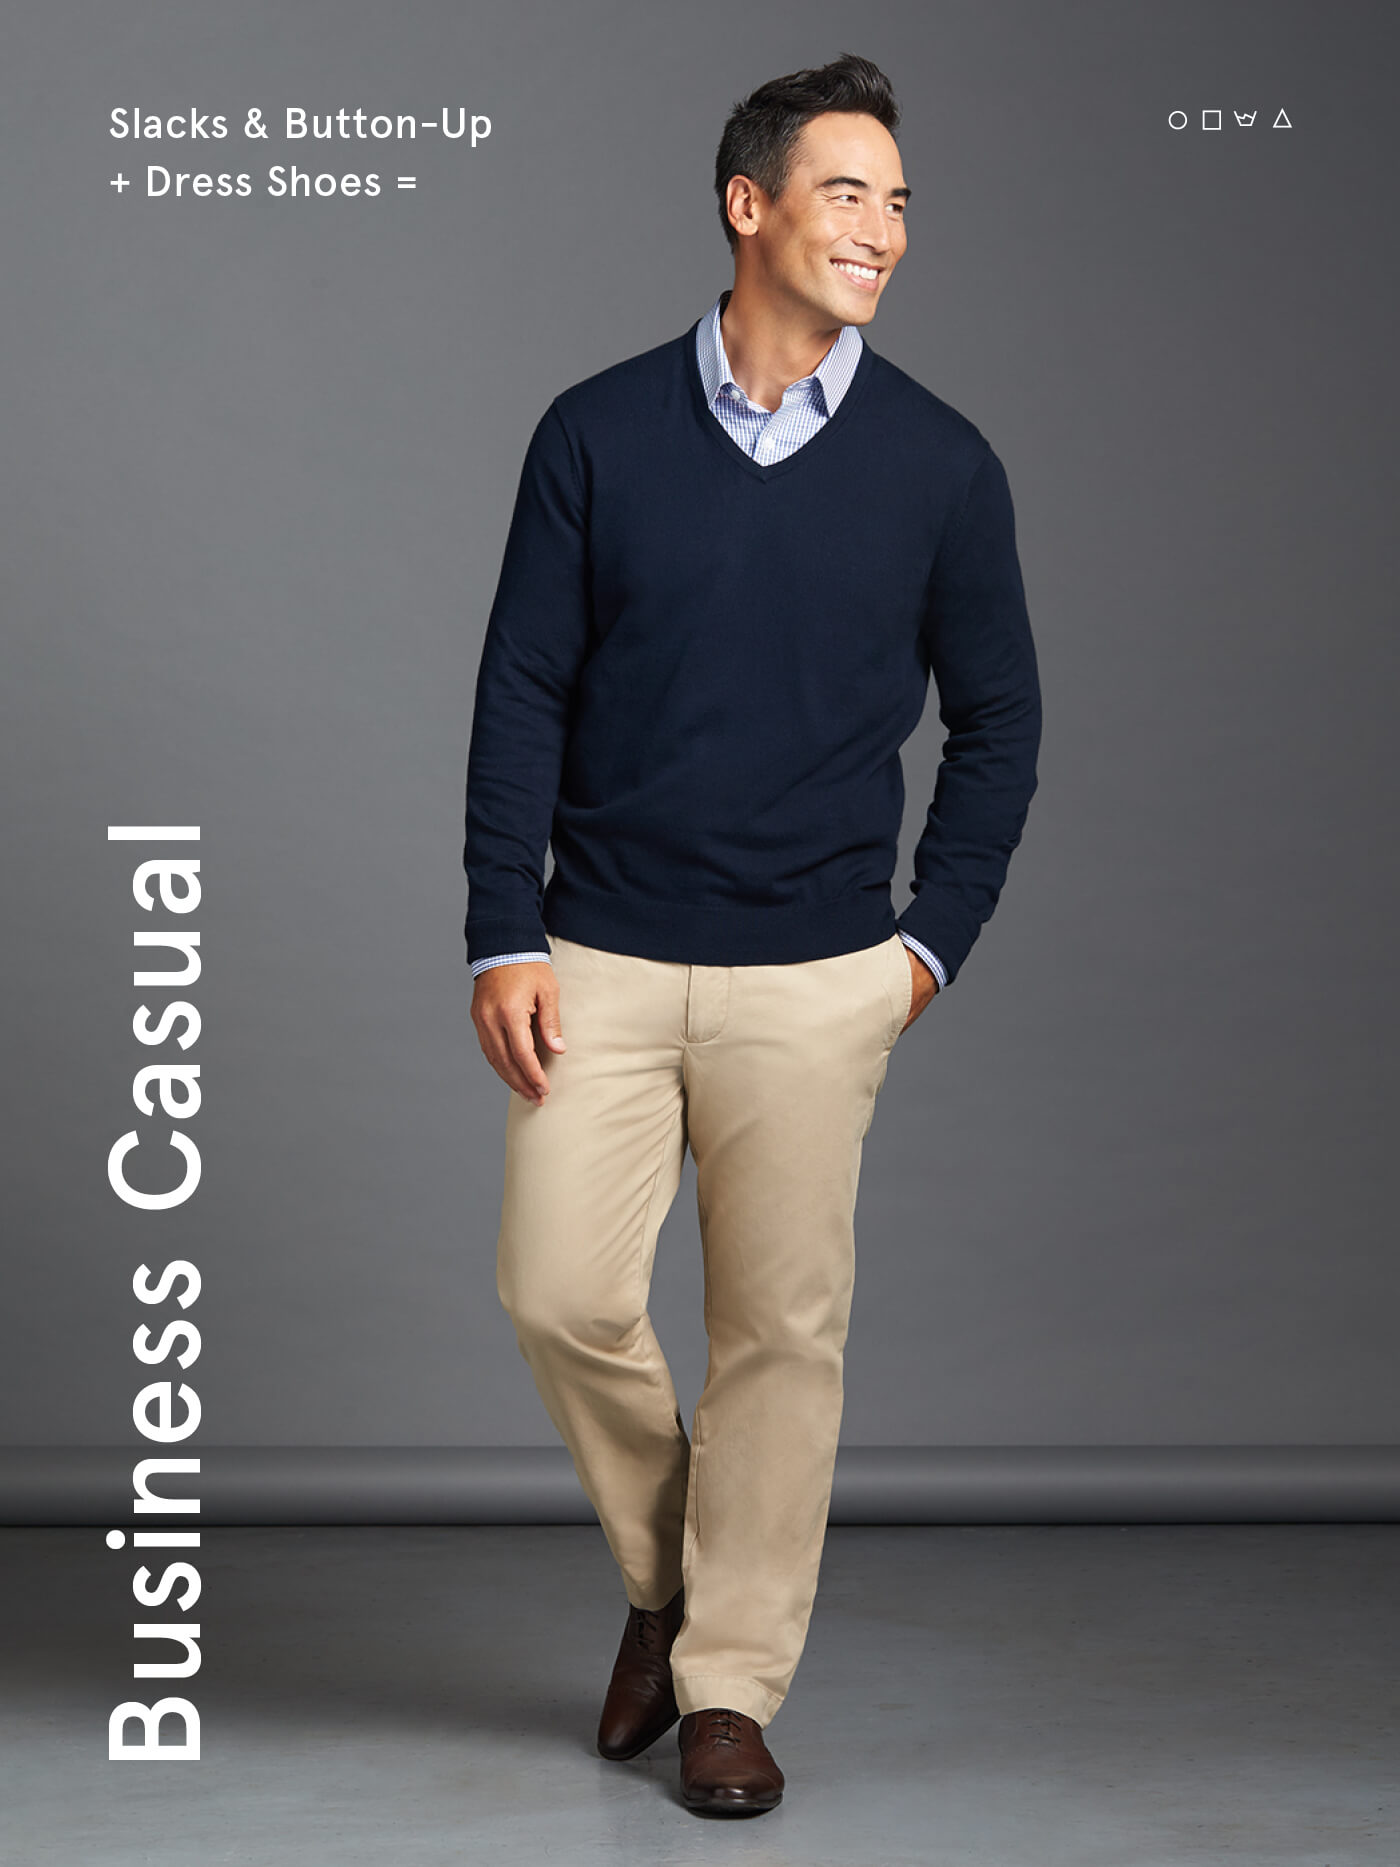 what is business casual for men slack and a button up with dress shoes - Business Casual Men Business Casual Attire For Men